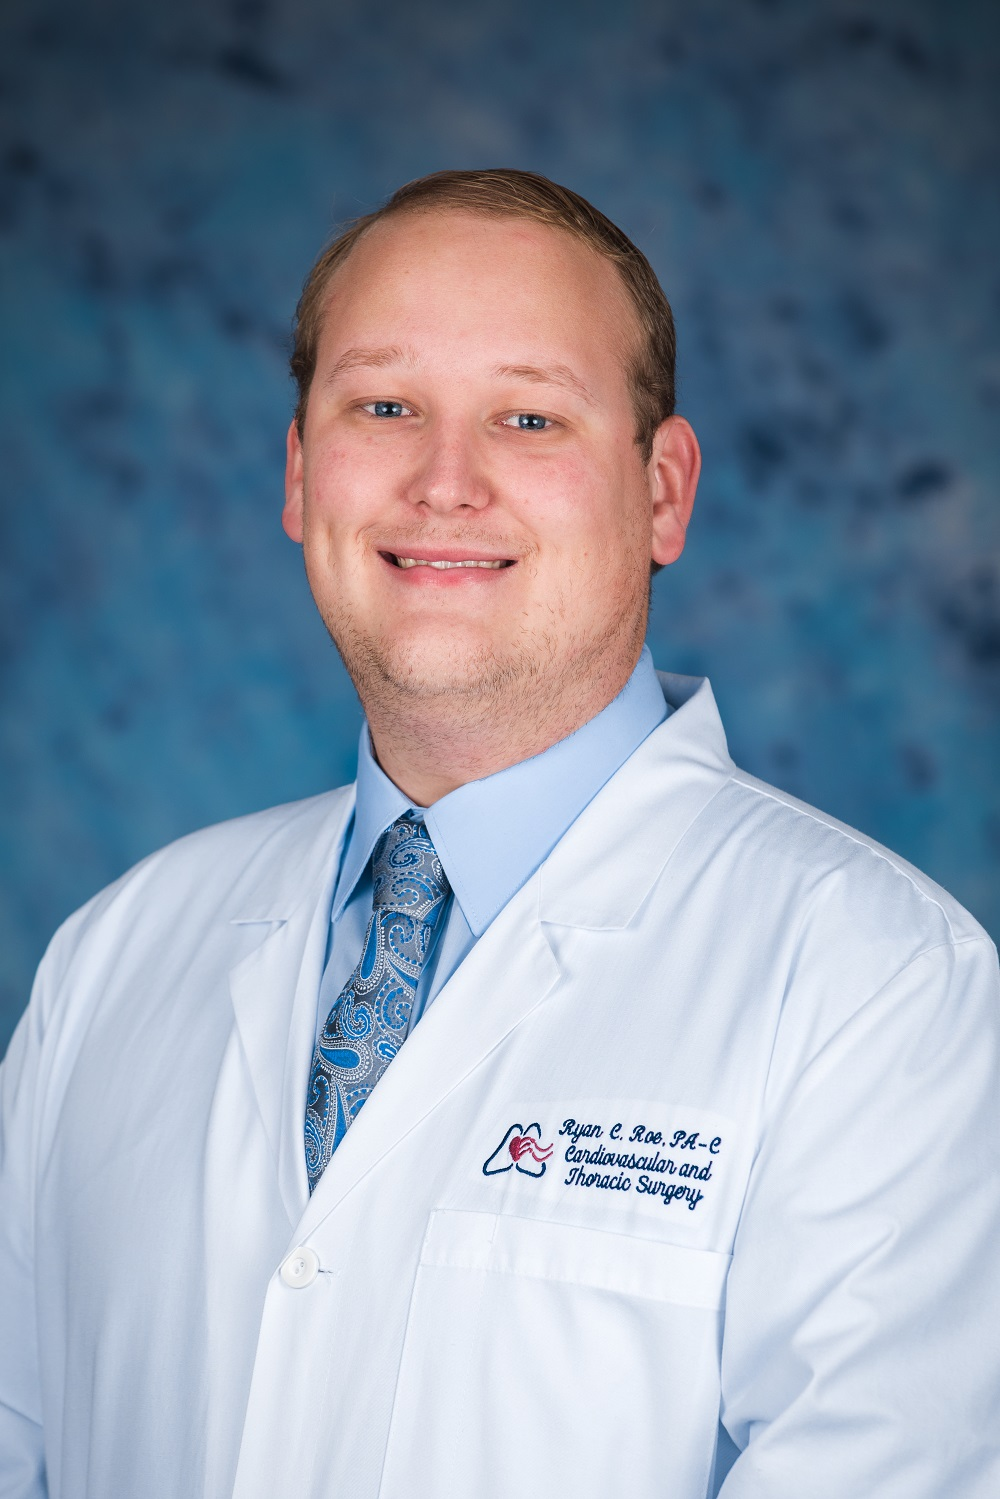 Ryan Roe, PA-C of East Tennessee Cardiovascular Surgery Group